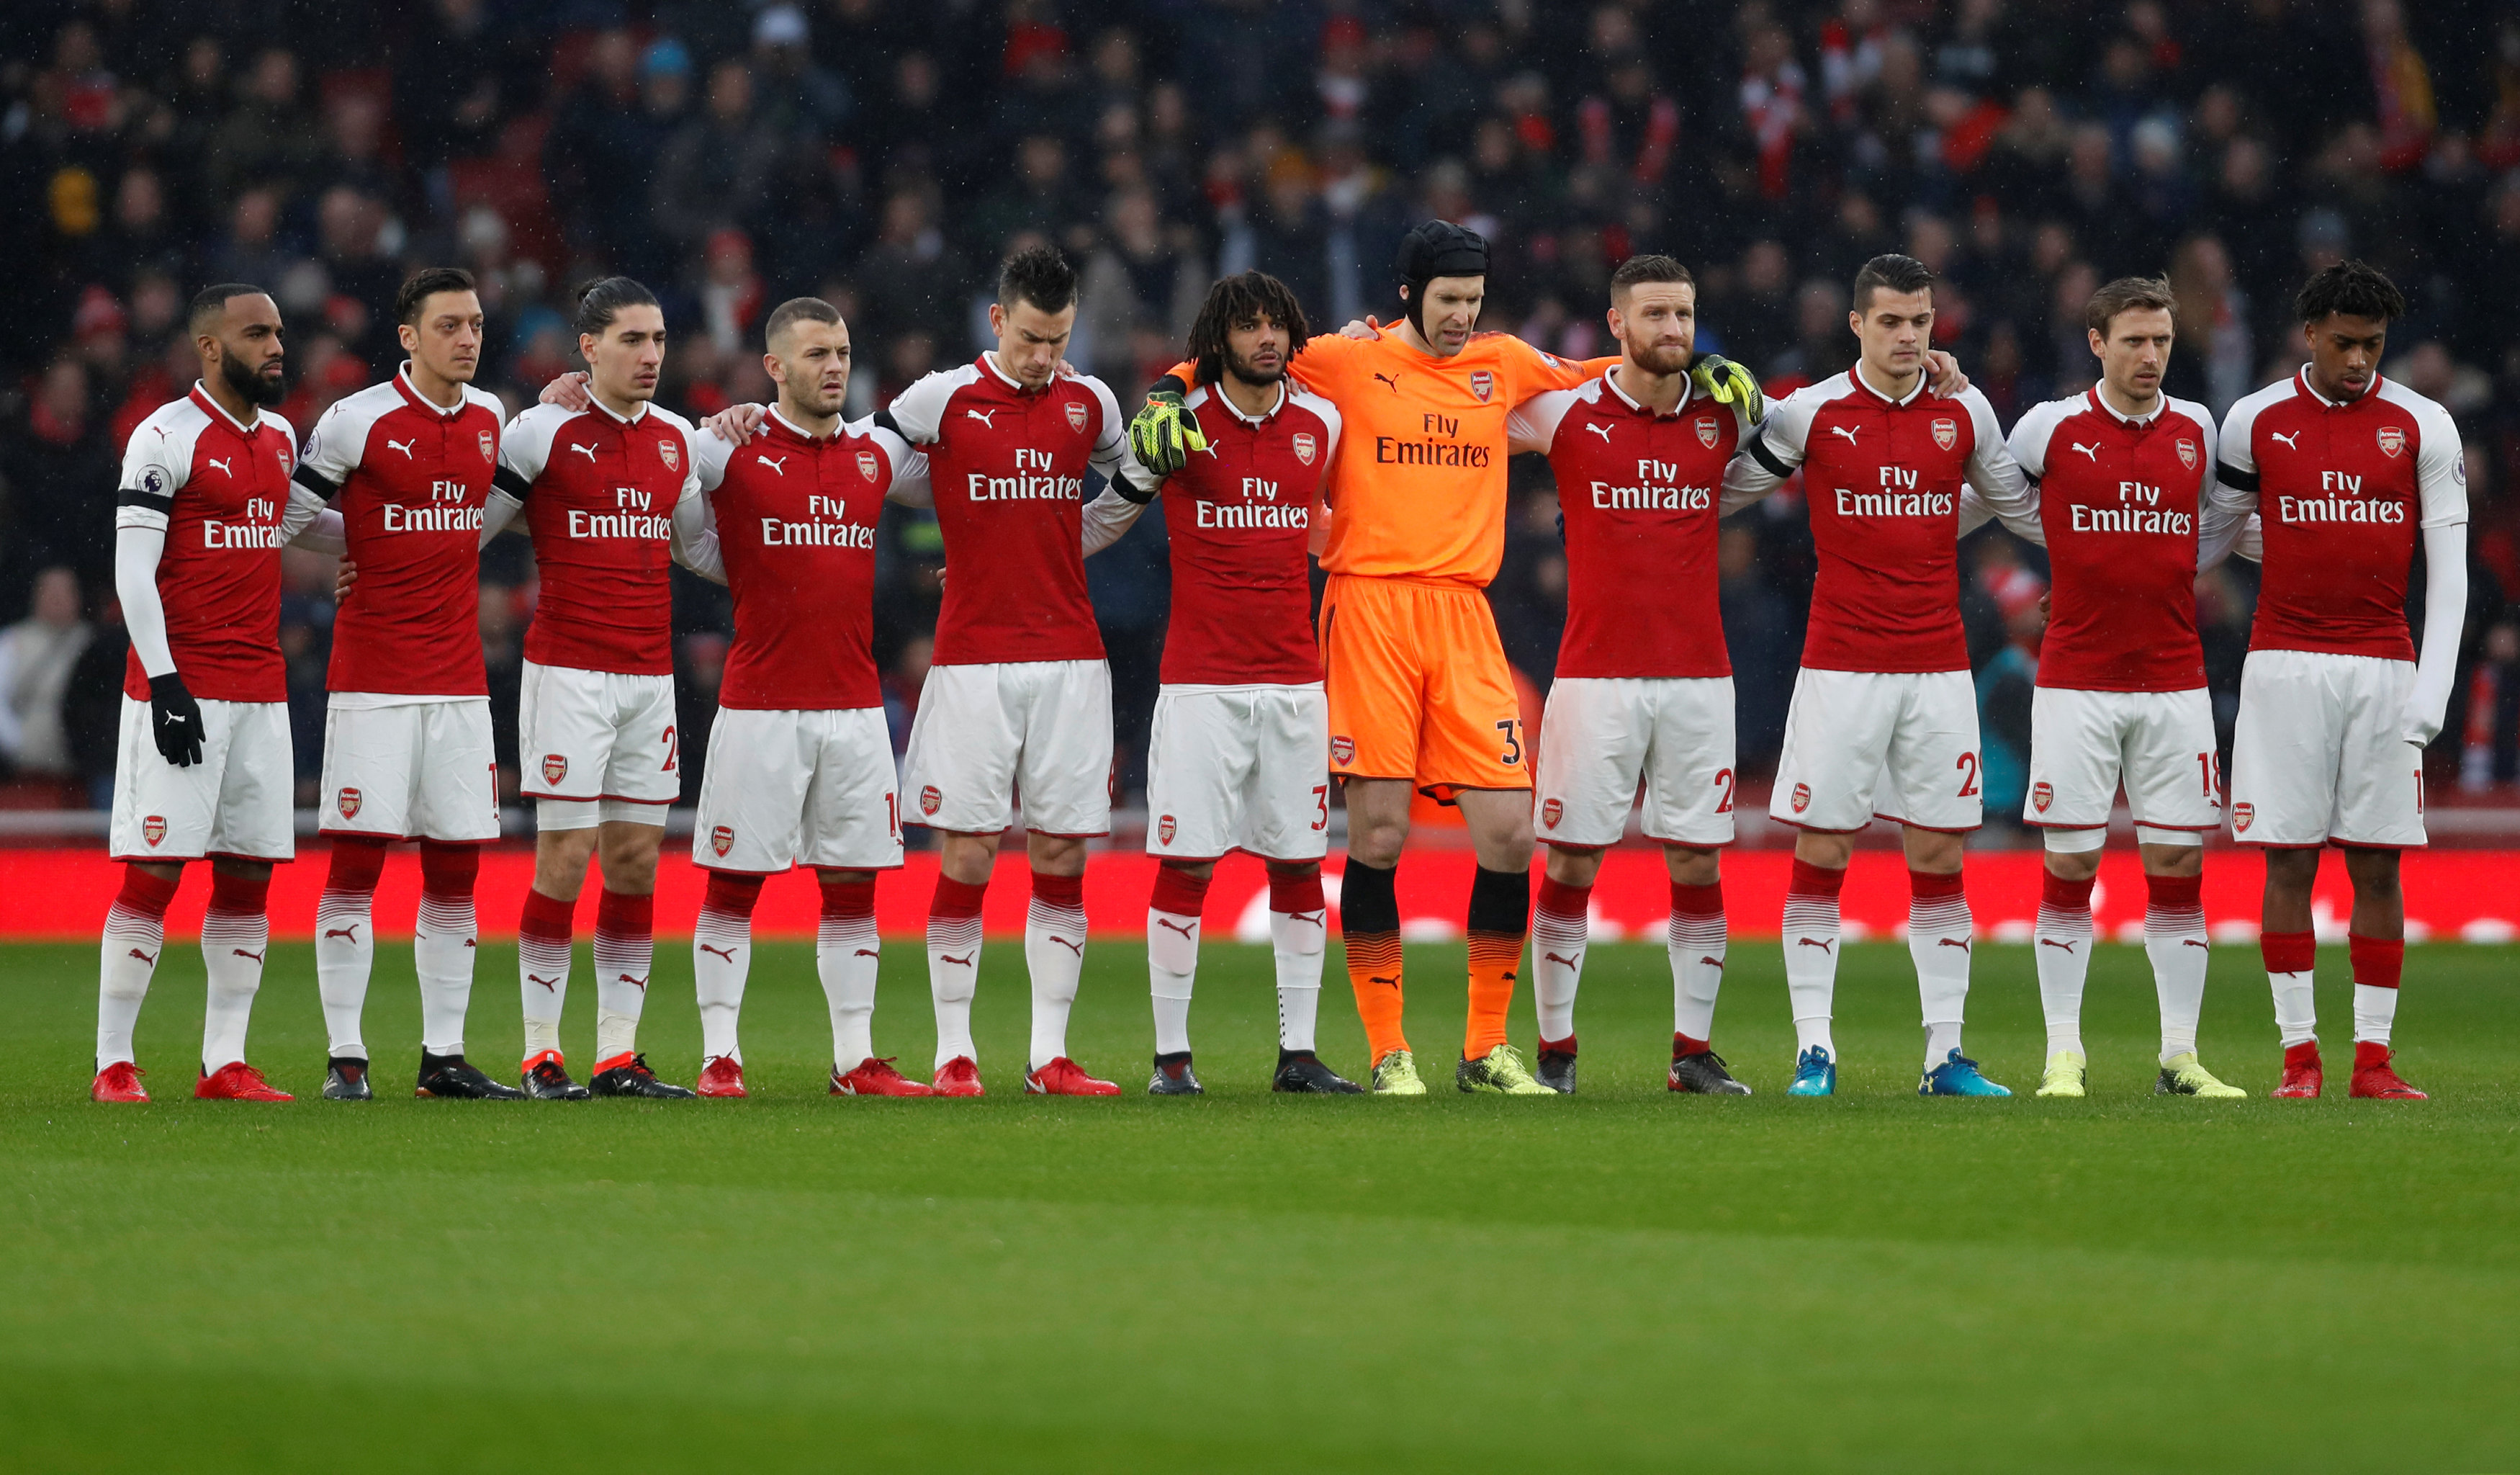 Arsenal Gallery: Arsenal FC Squad, Team, All Players 2018/2019- Arsenal